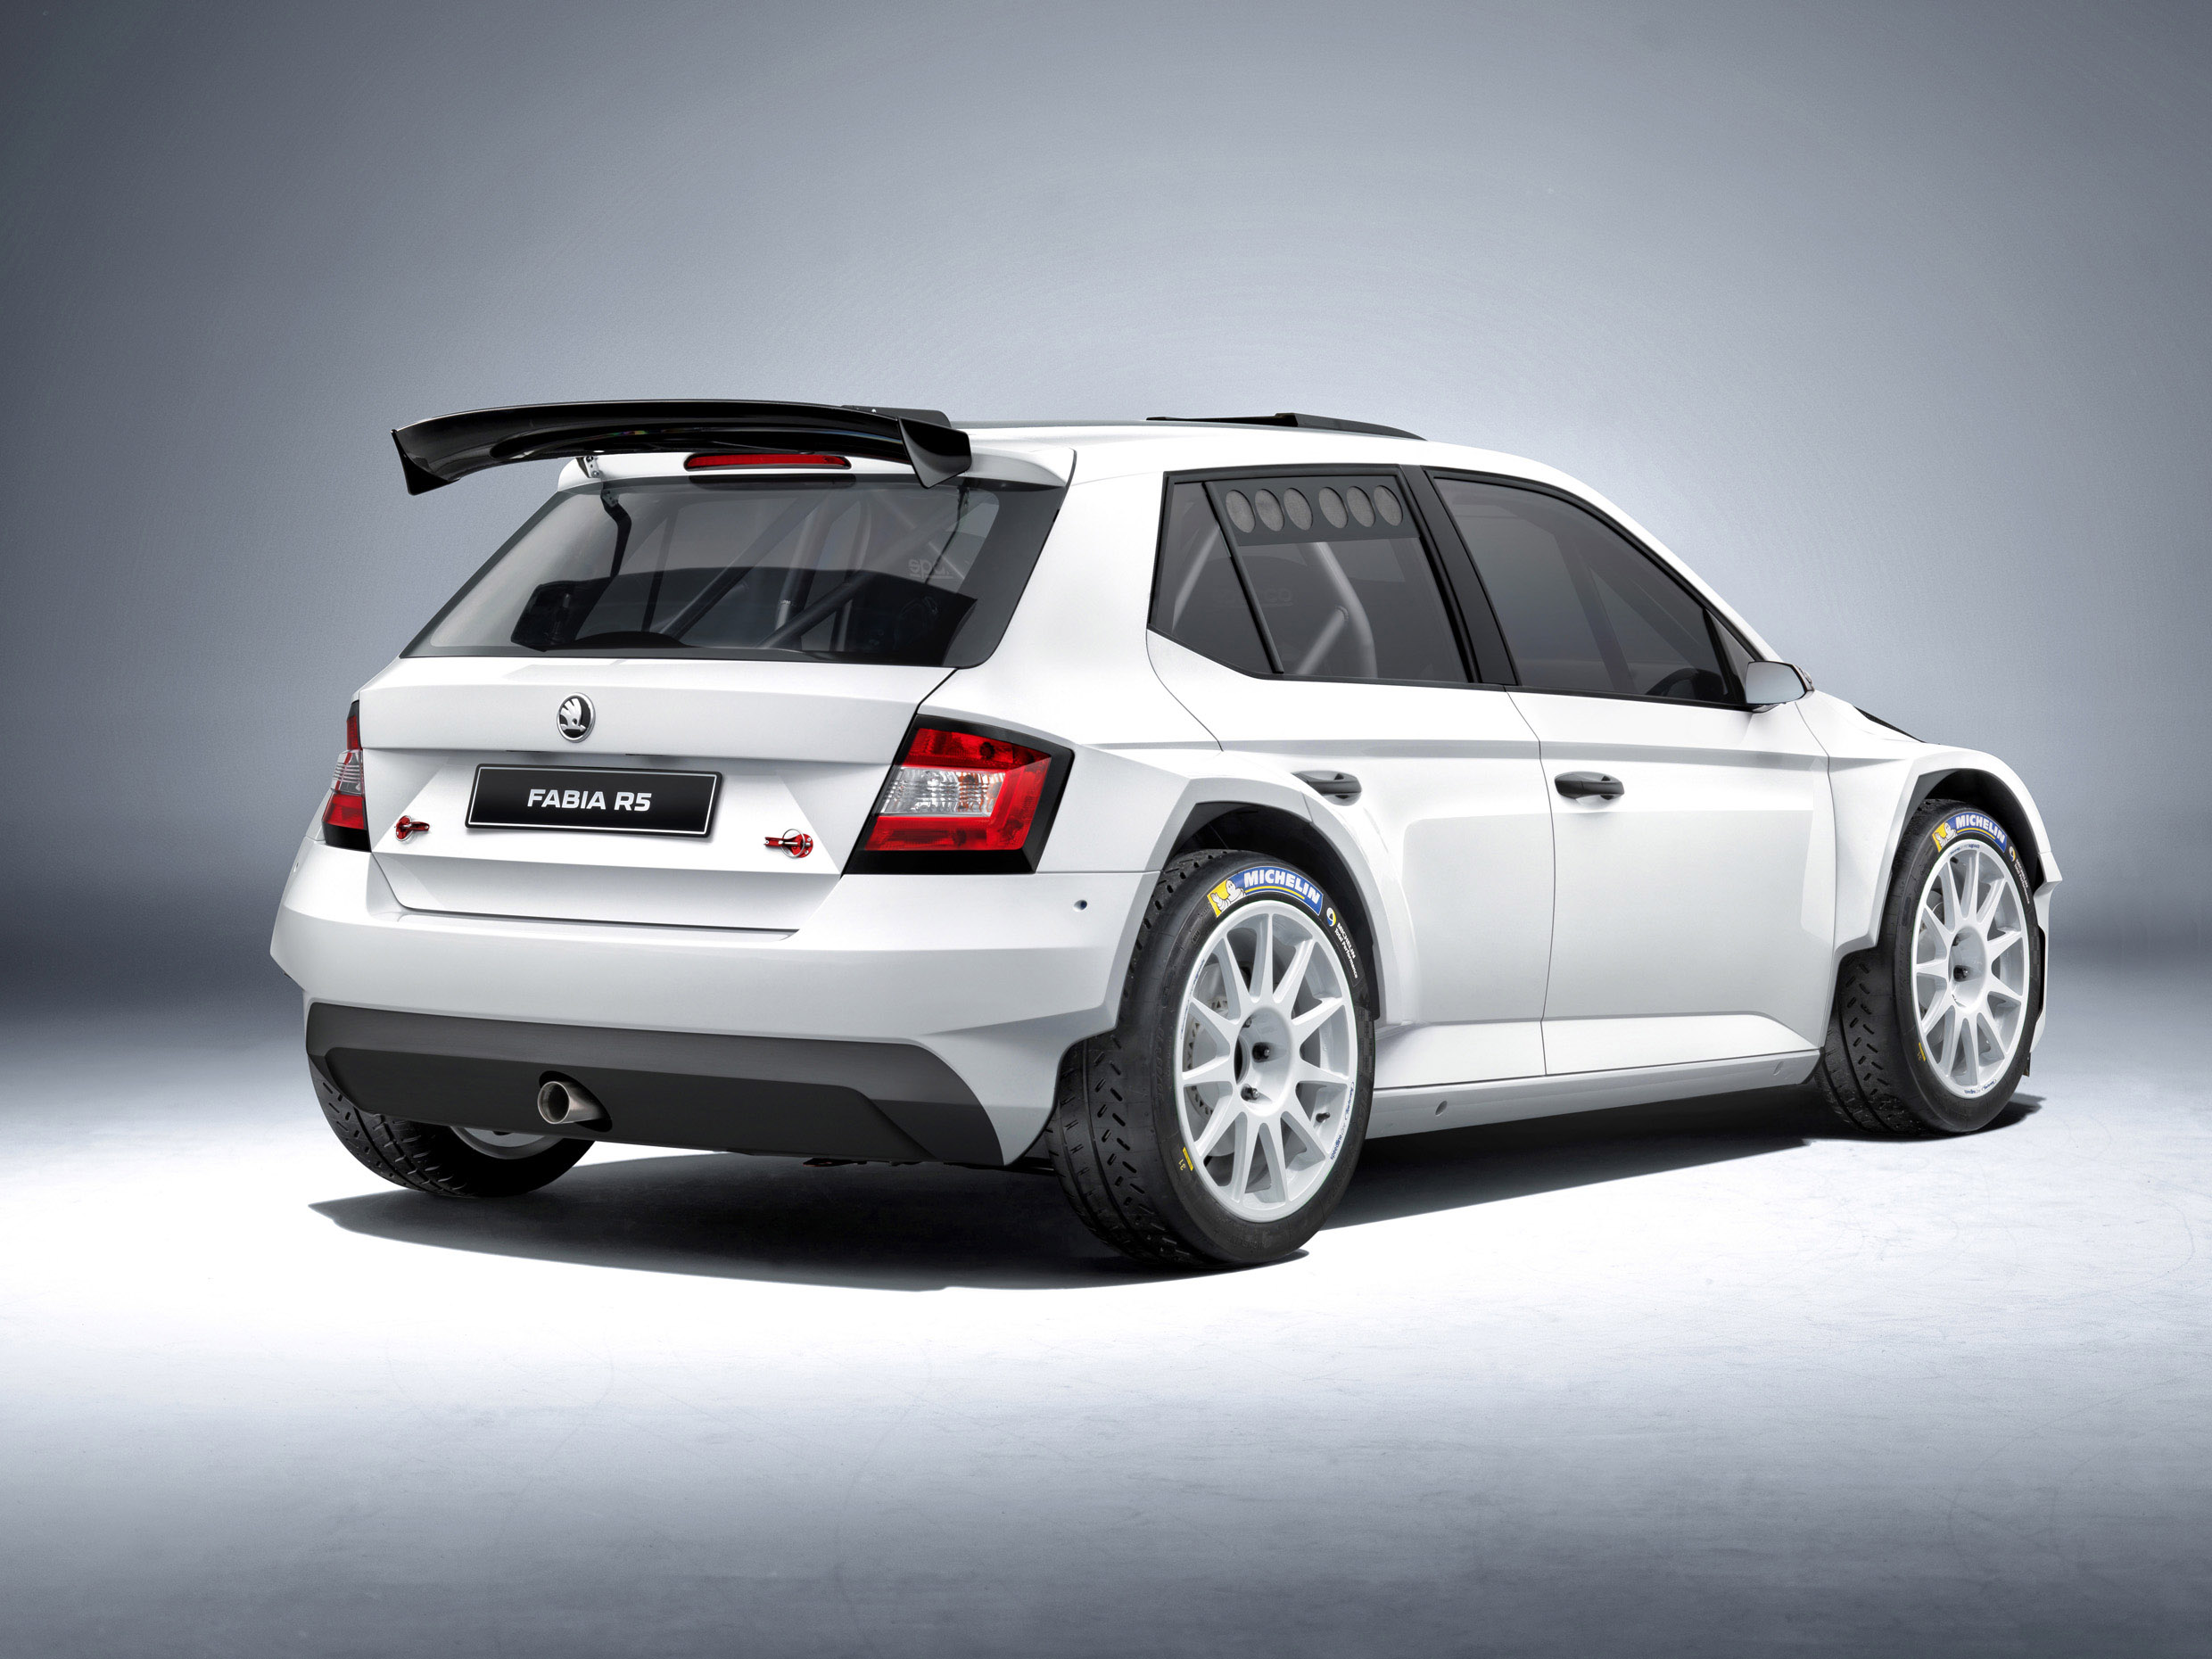 skoda fabia r5 is ready for the road. Black Bedroom Furniture Sets. Home Design Ideas